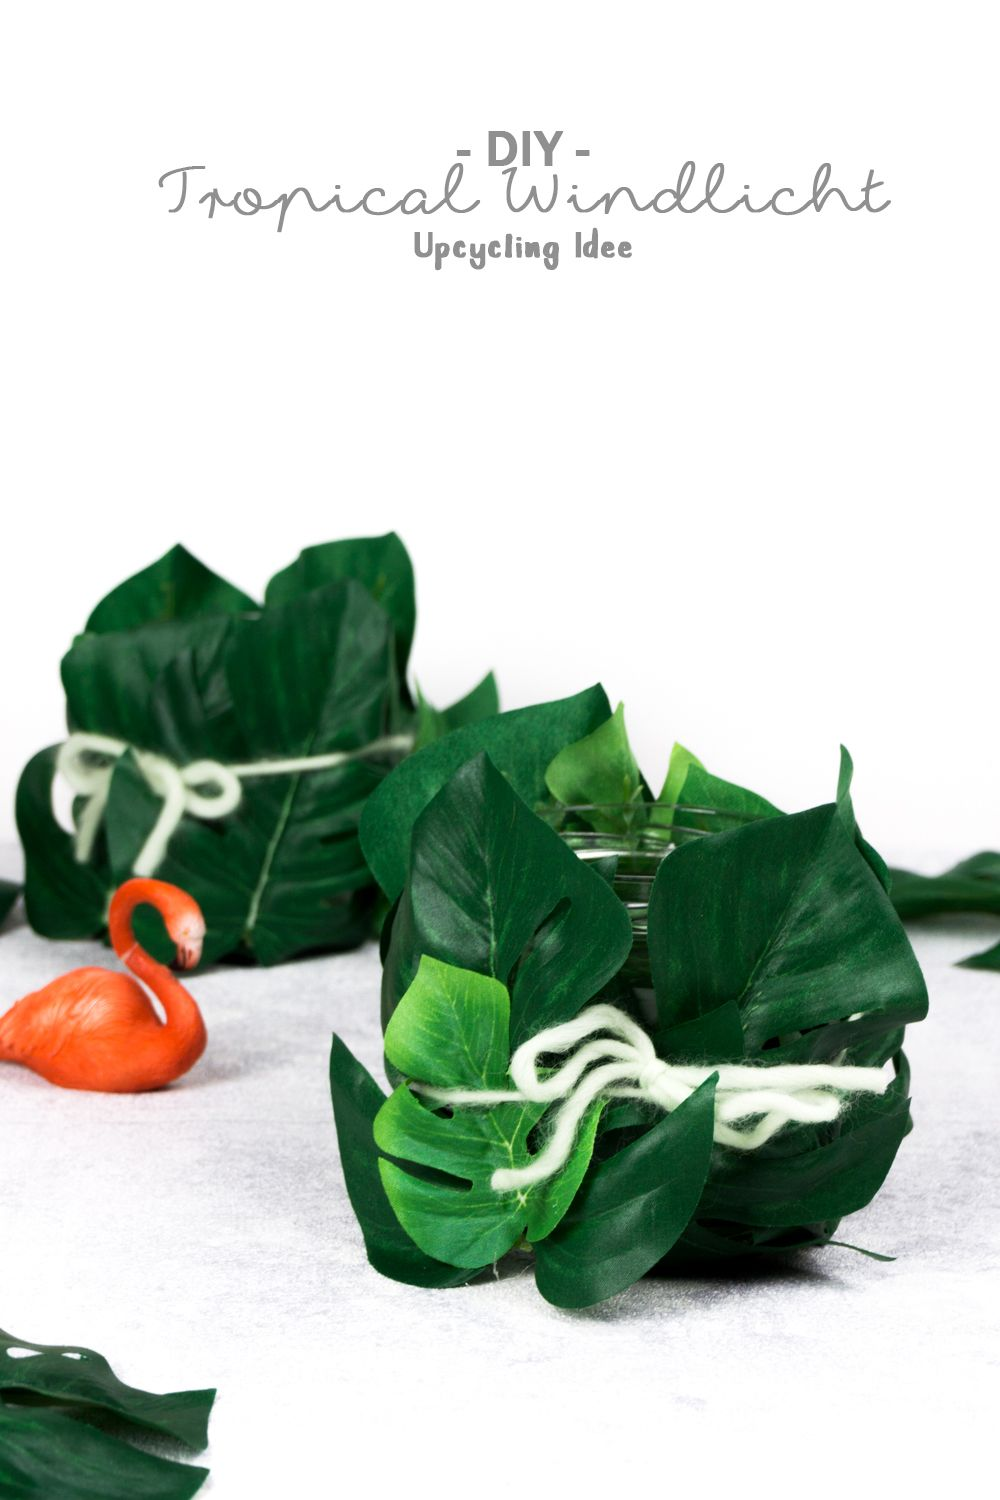 Schraubglas-Upcycling: Tropical Windlichter basteln   Upcycling